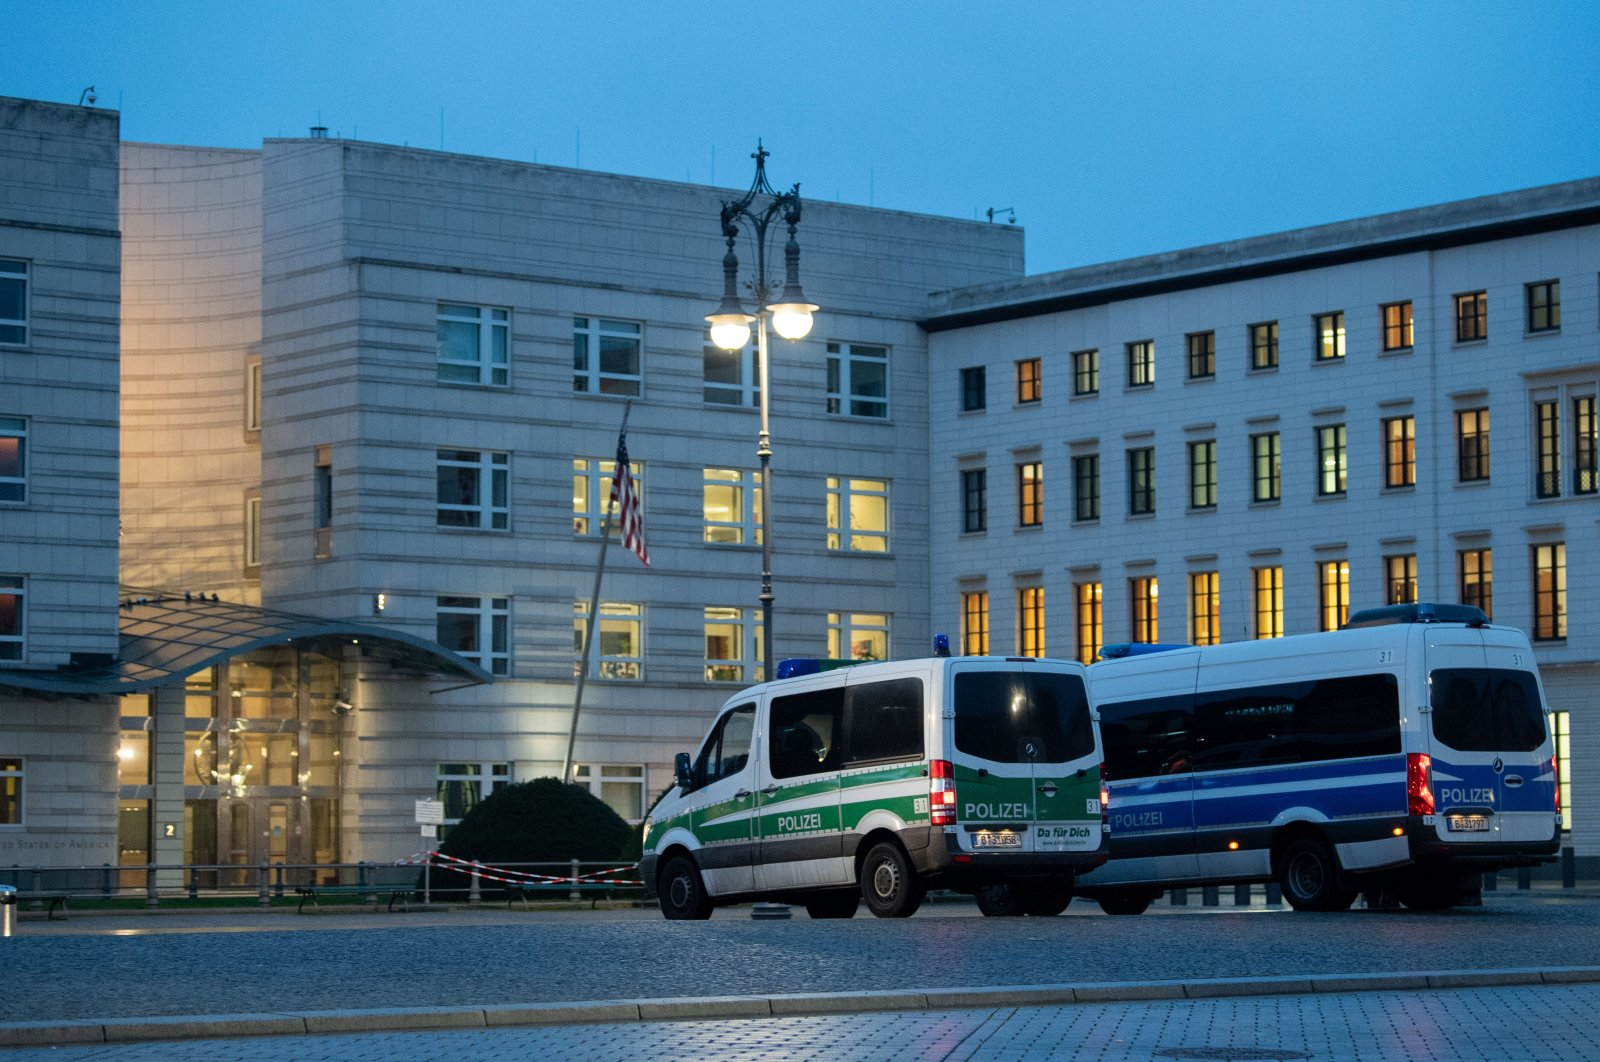 Police vehicles parked outside the U.S. Embassy, in Berlin, Germany, Jan. 7, 2021. (DPA via Getty Images)